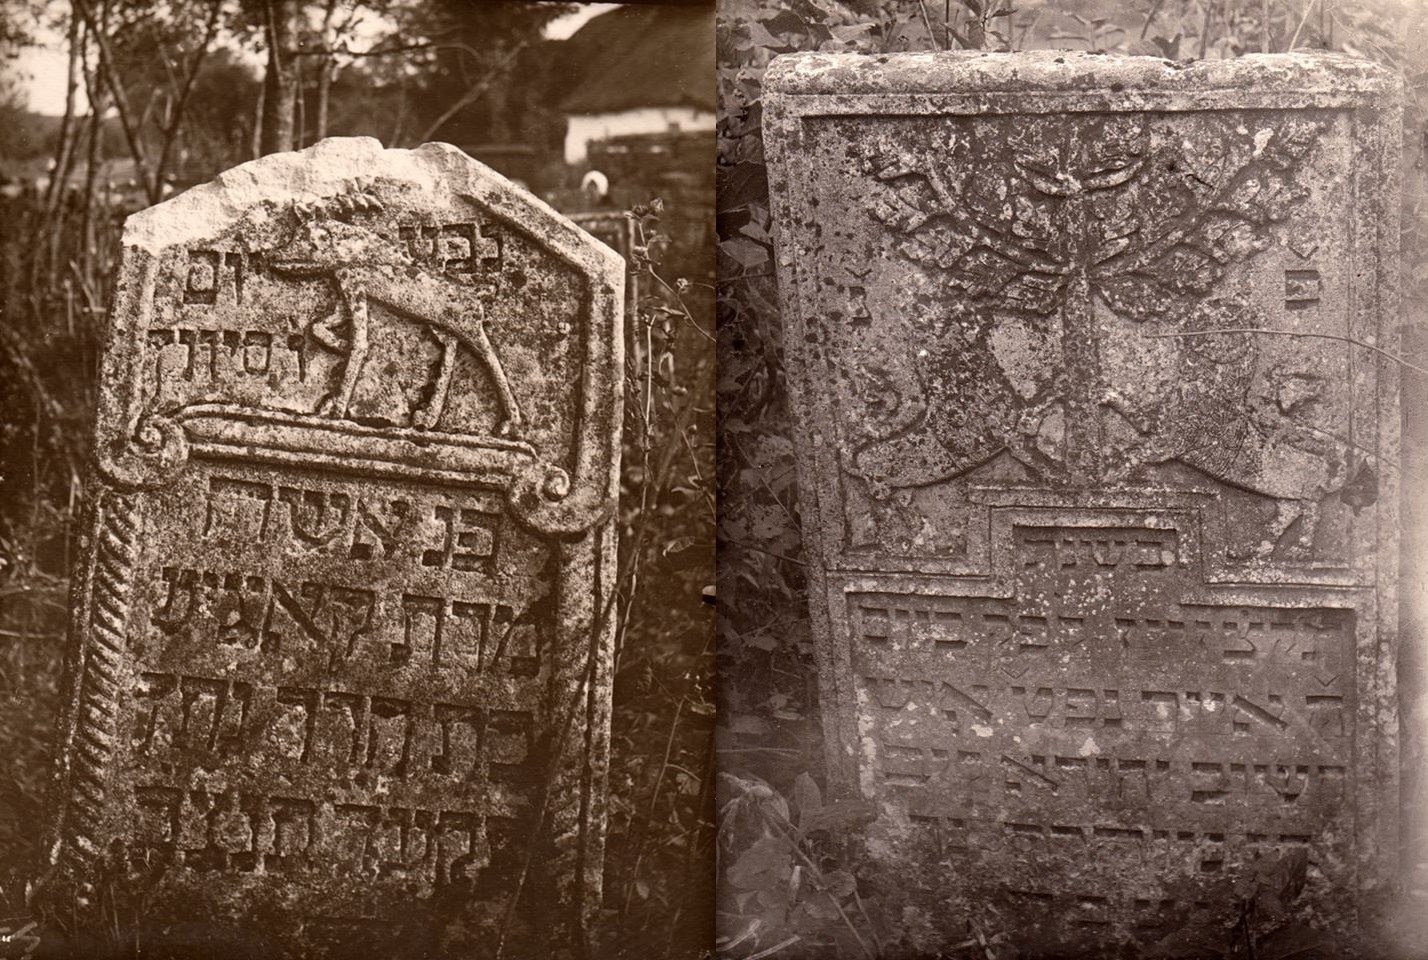 Gravestones in Liantskorun Jewish cemetery, 1930's. Photo from the collection of Pavlo Zholtovskiy.